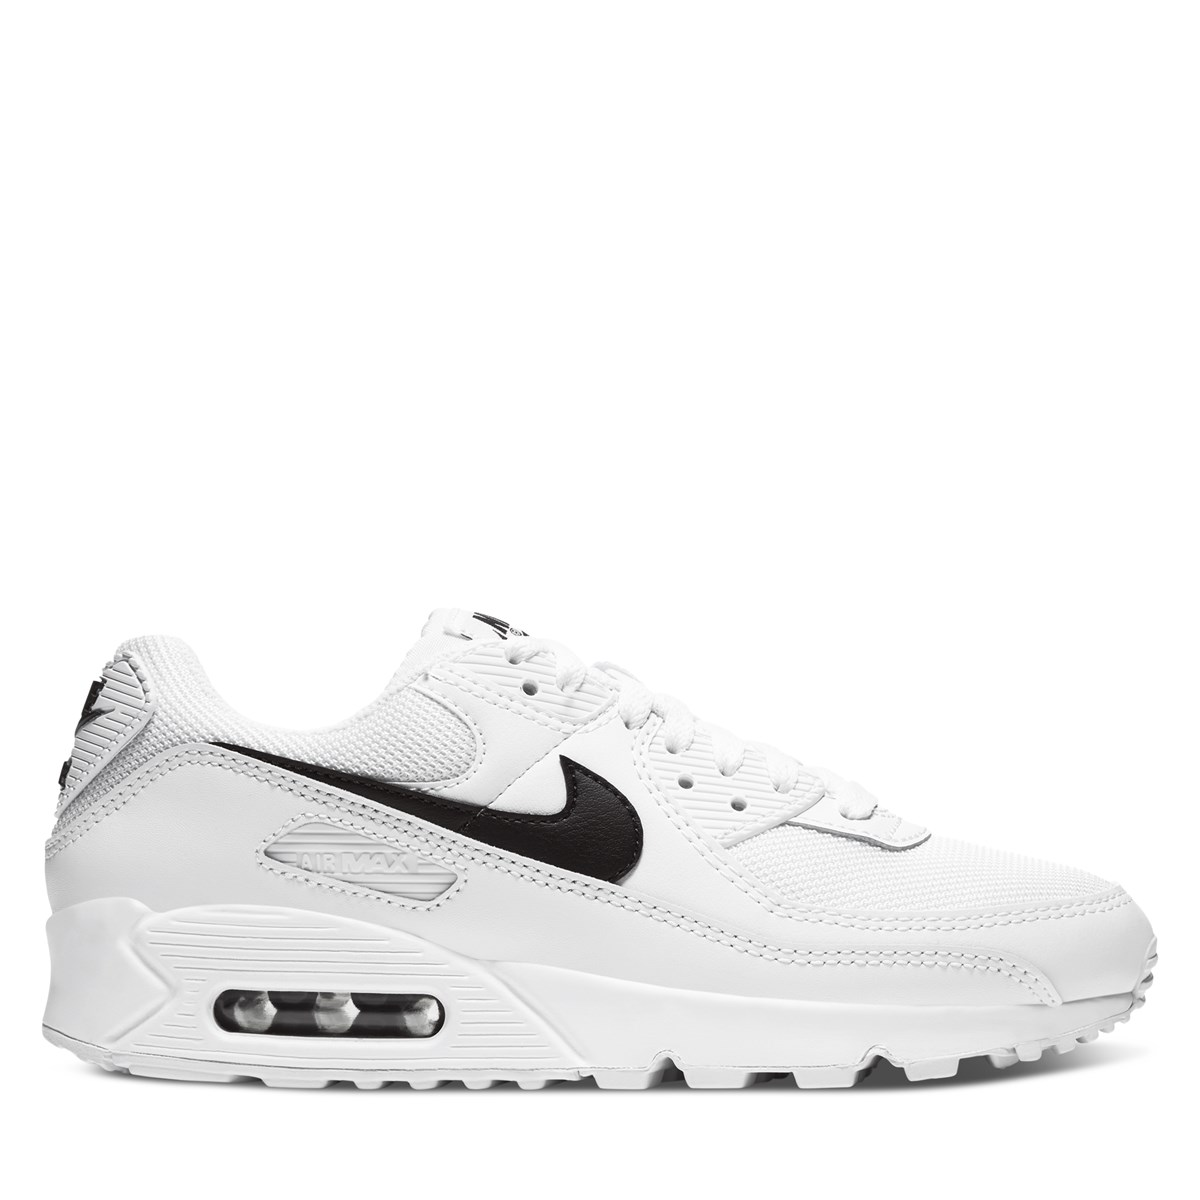 Women's Air Max 90 Sneakers in White